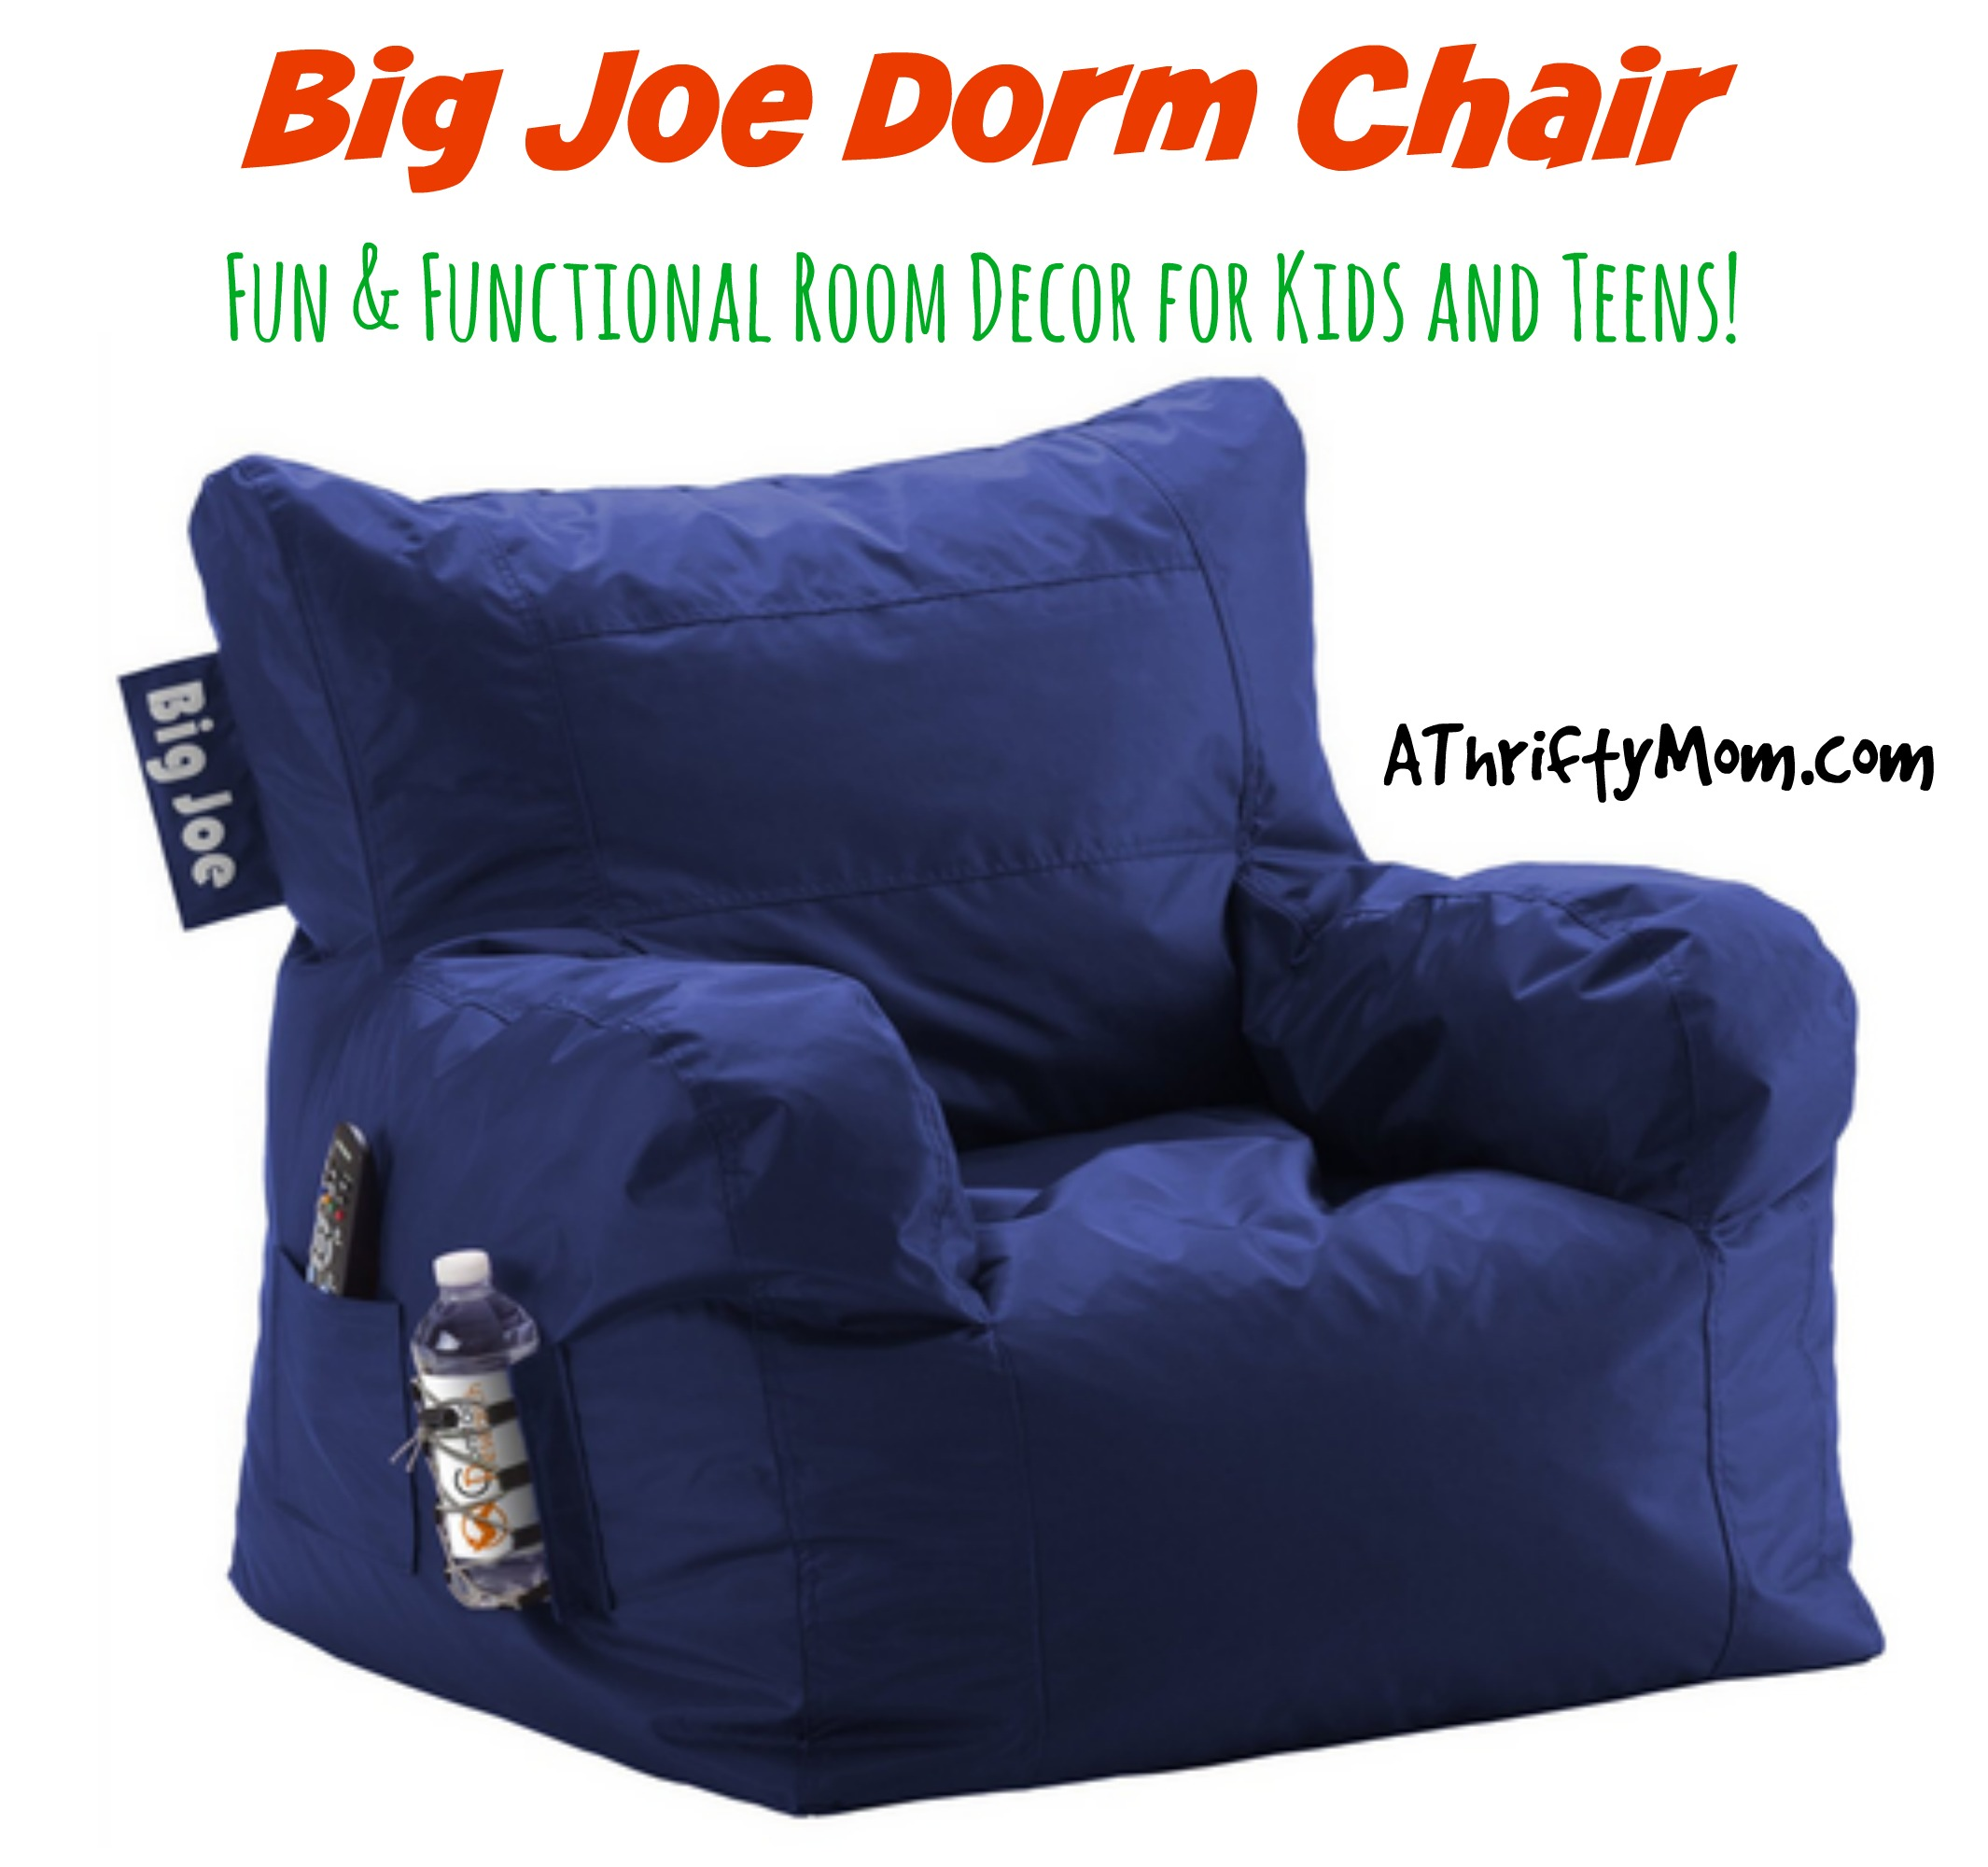 big joe kids chair white dining table and 6 chairs uk dorm fun functional room decor for teens a thrifty mom recipes crafts diy more